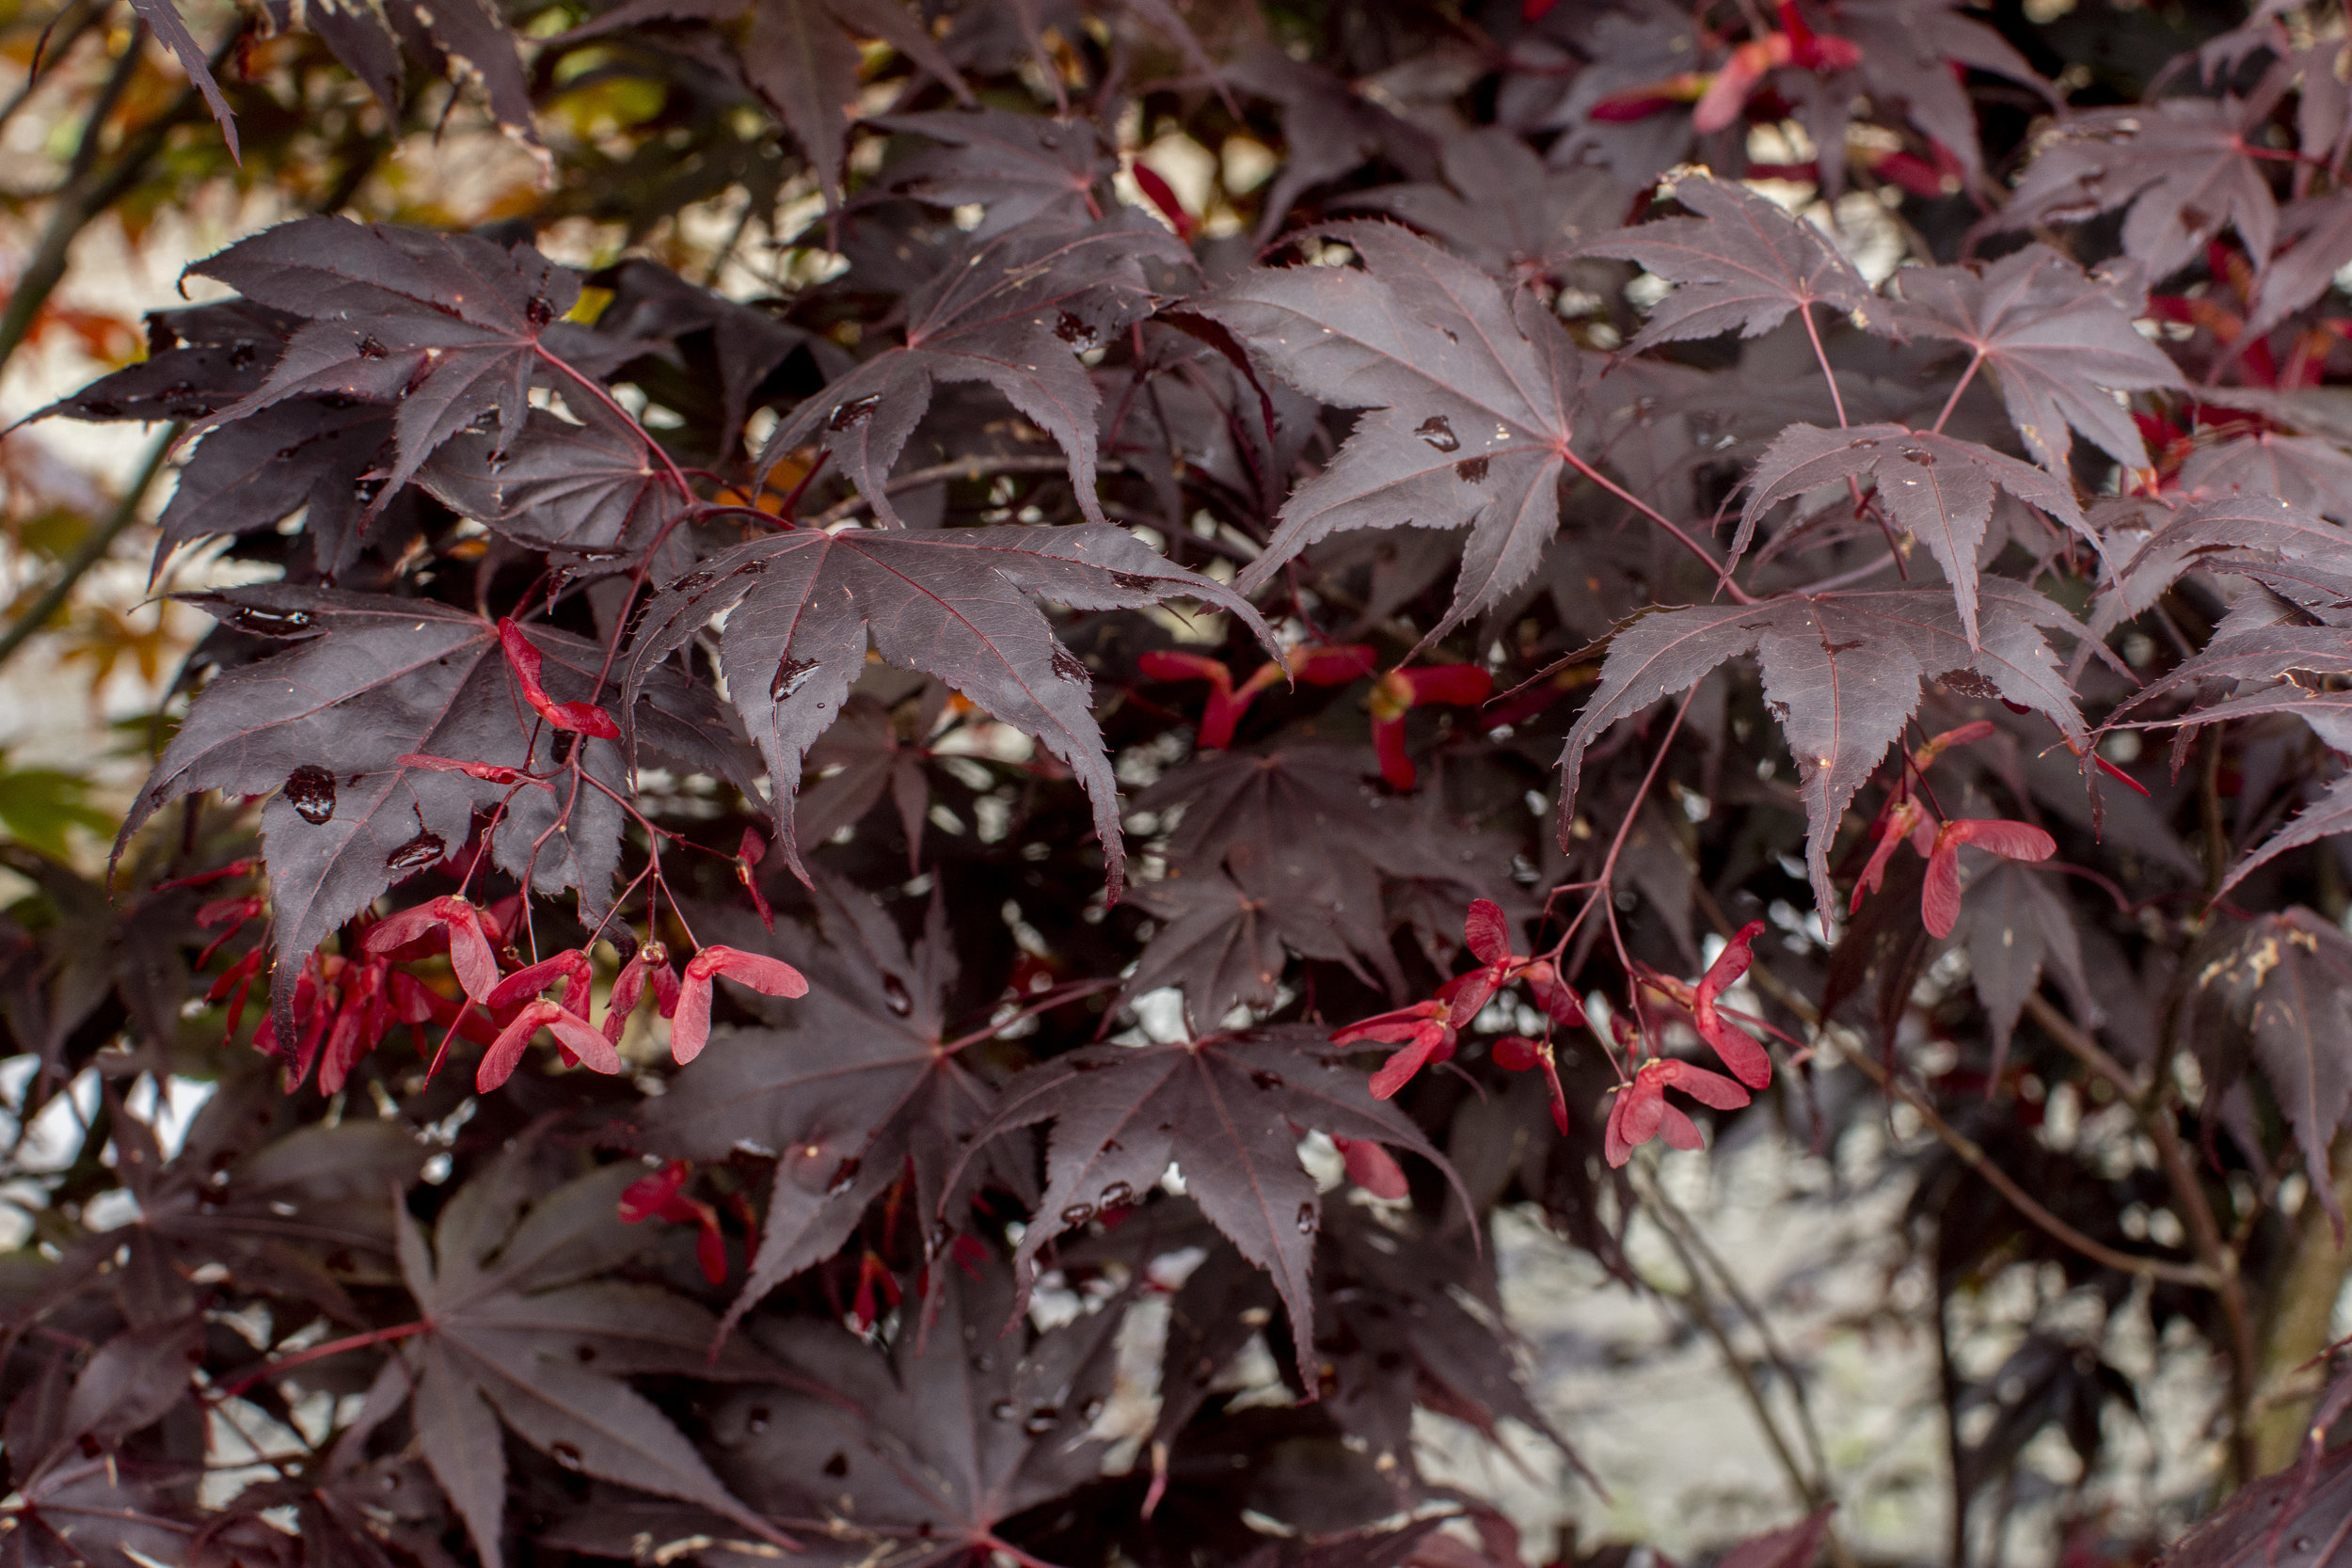 ACER p.'Bloodgood' - Upright tree with bright red leaves in spring. Burgundy black in summer. Black bark provides interest in winter.Mature size: 20'